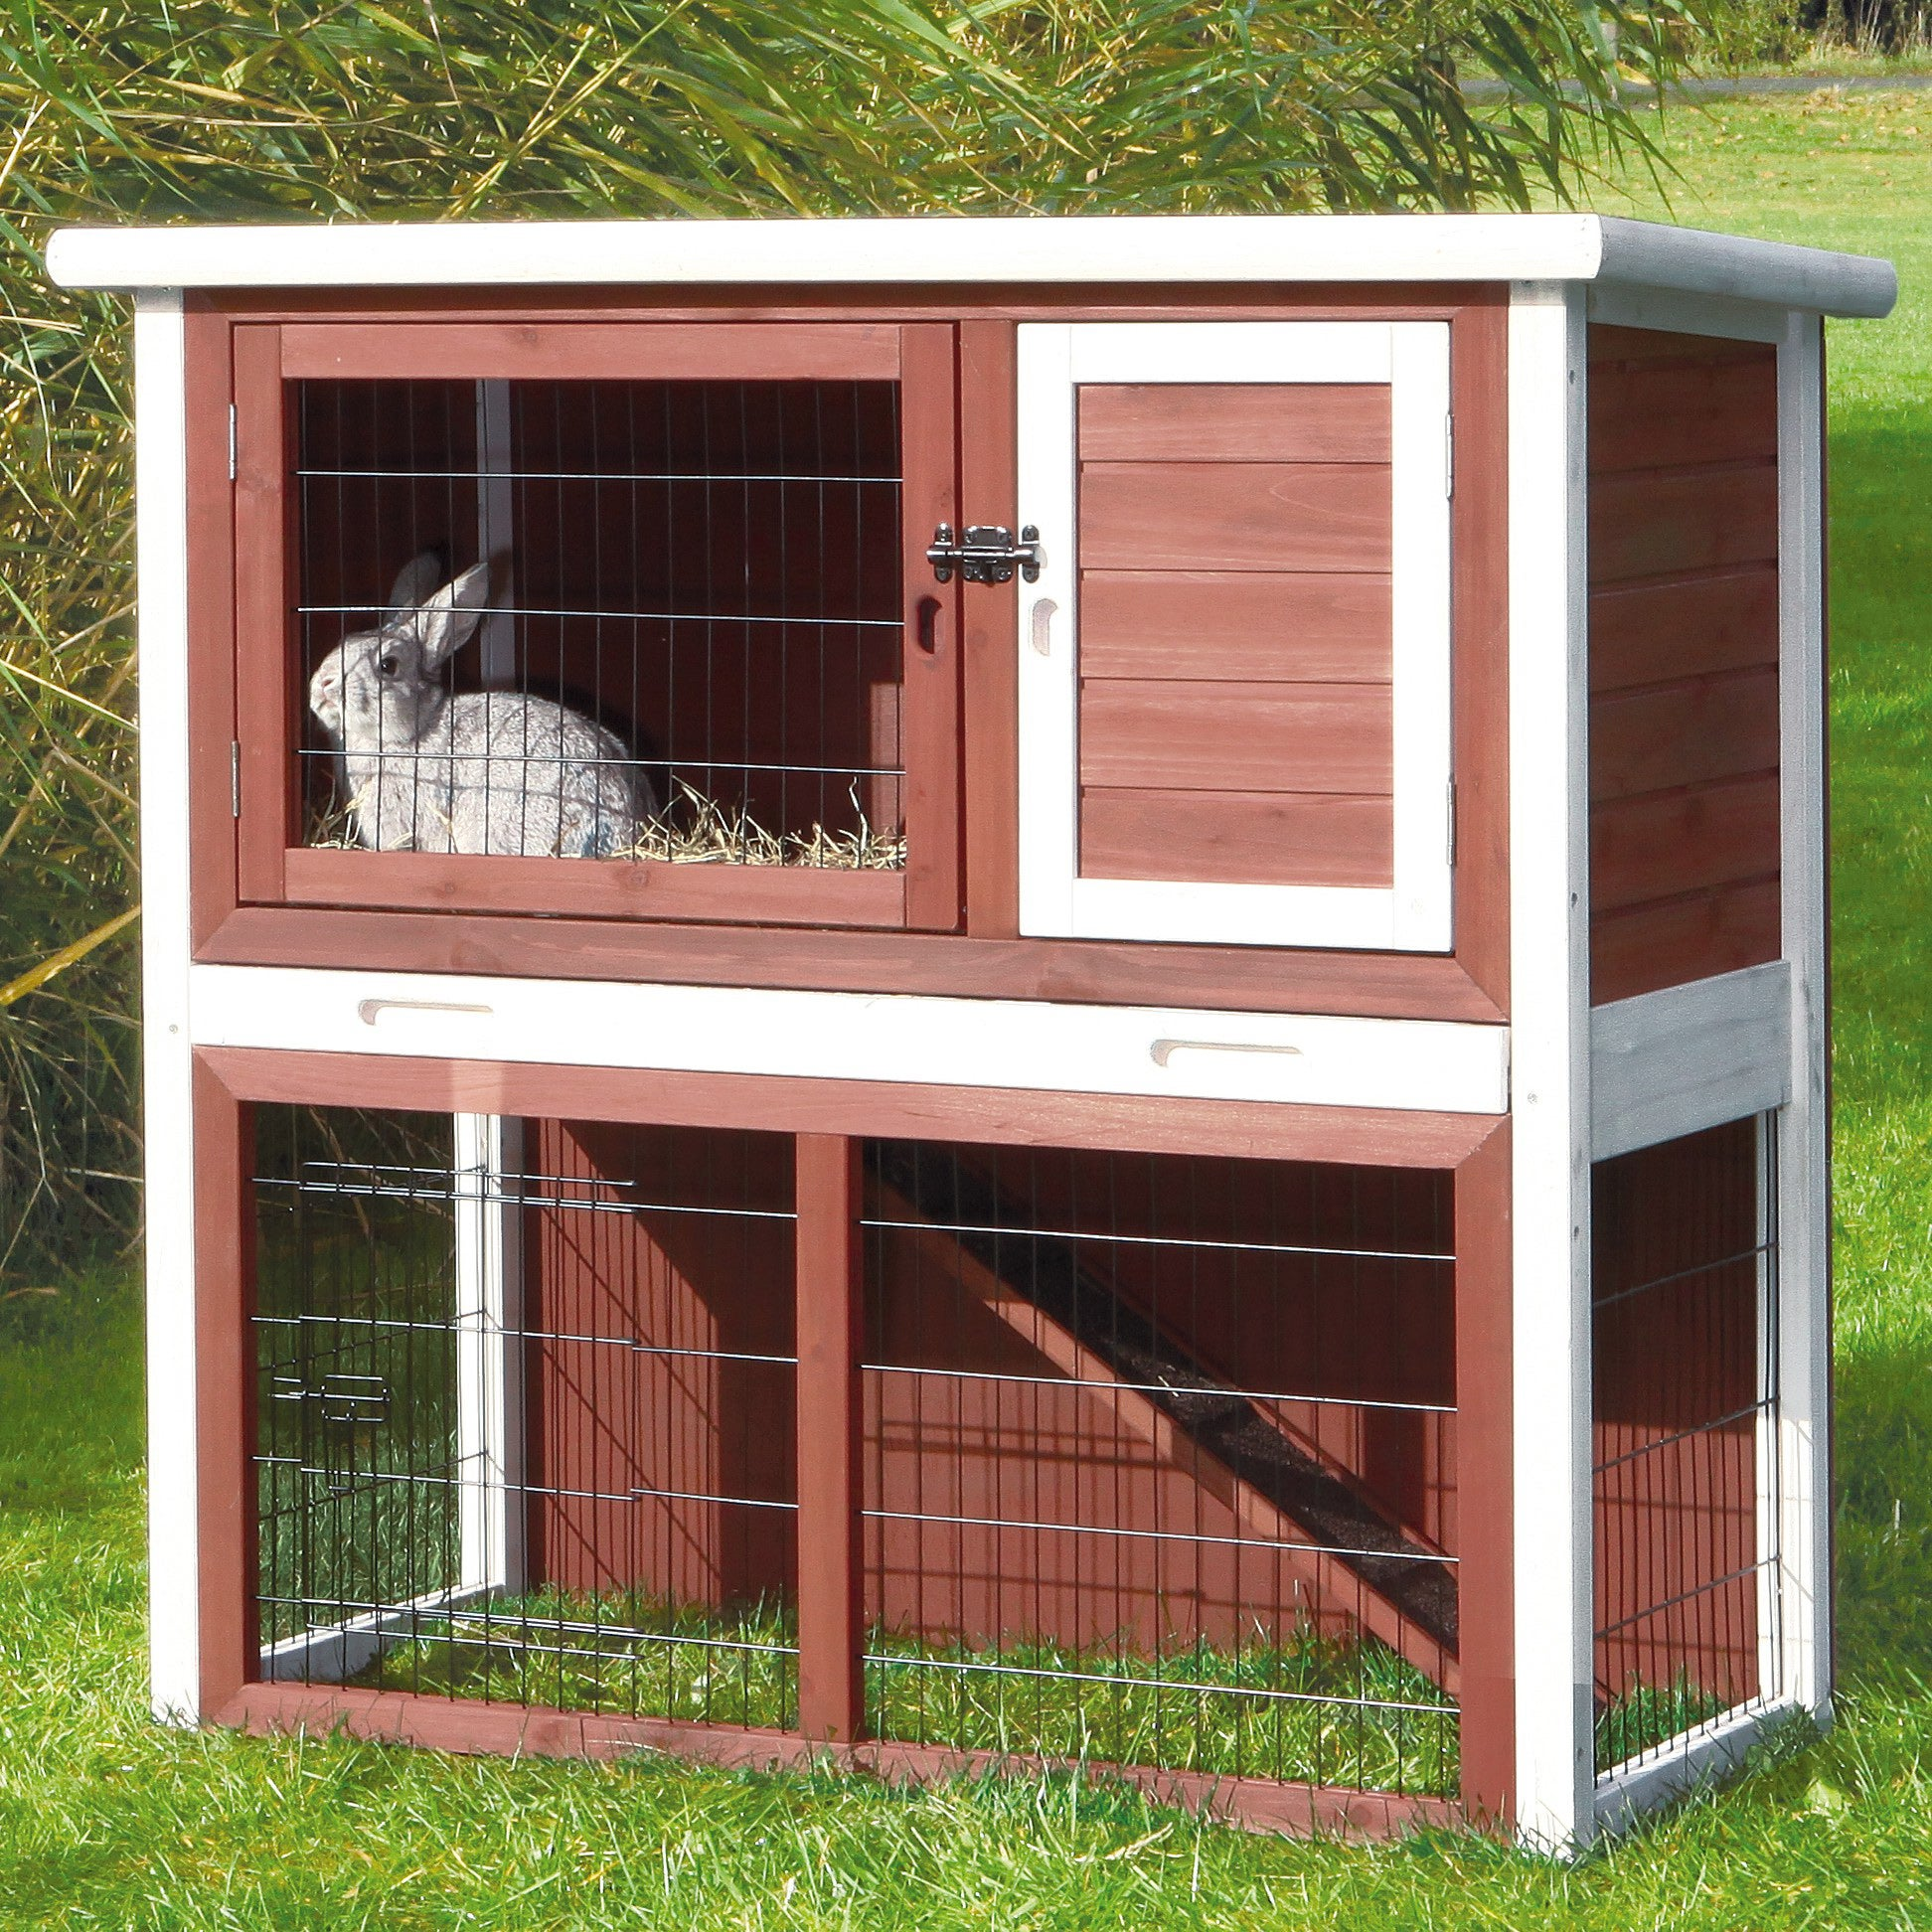 houses house curved pet hutches rabbits rabbit shop guinea with small salisbury new hutch pig animal